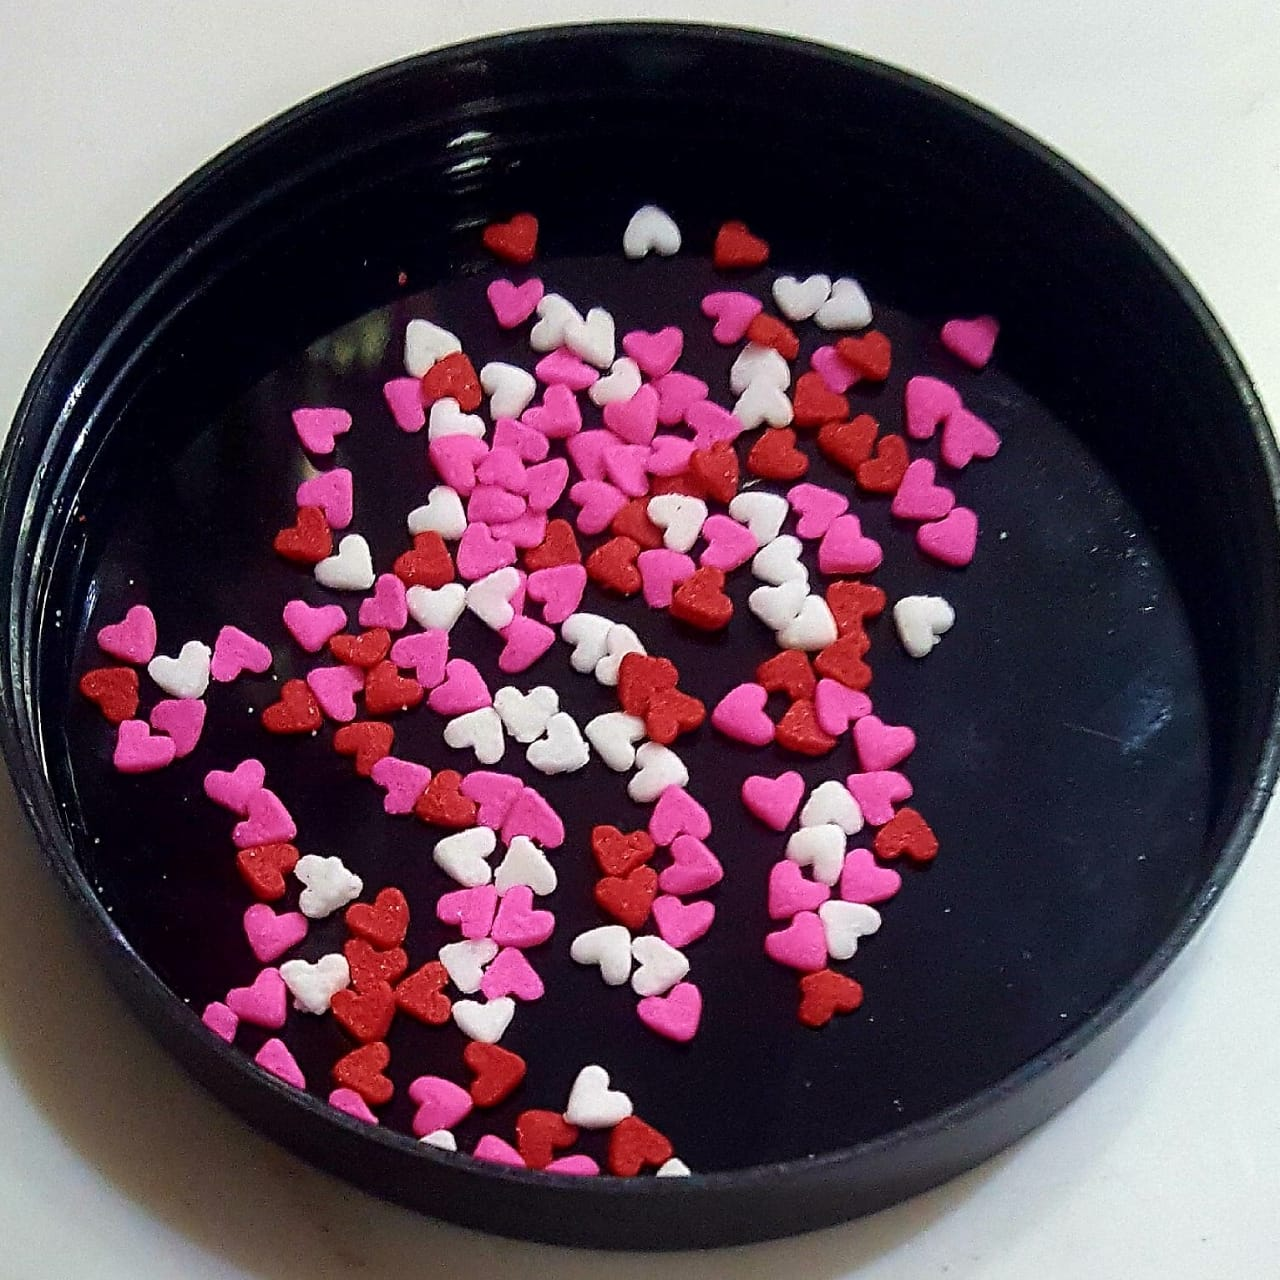 CDP019 - Mini Hearts Red White Pink Sprinkles Confetti 8000gm